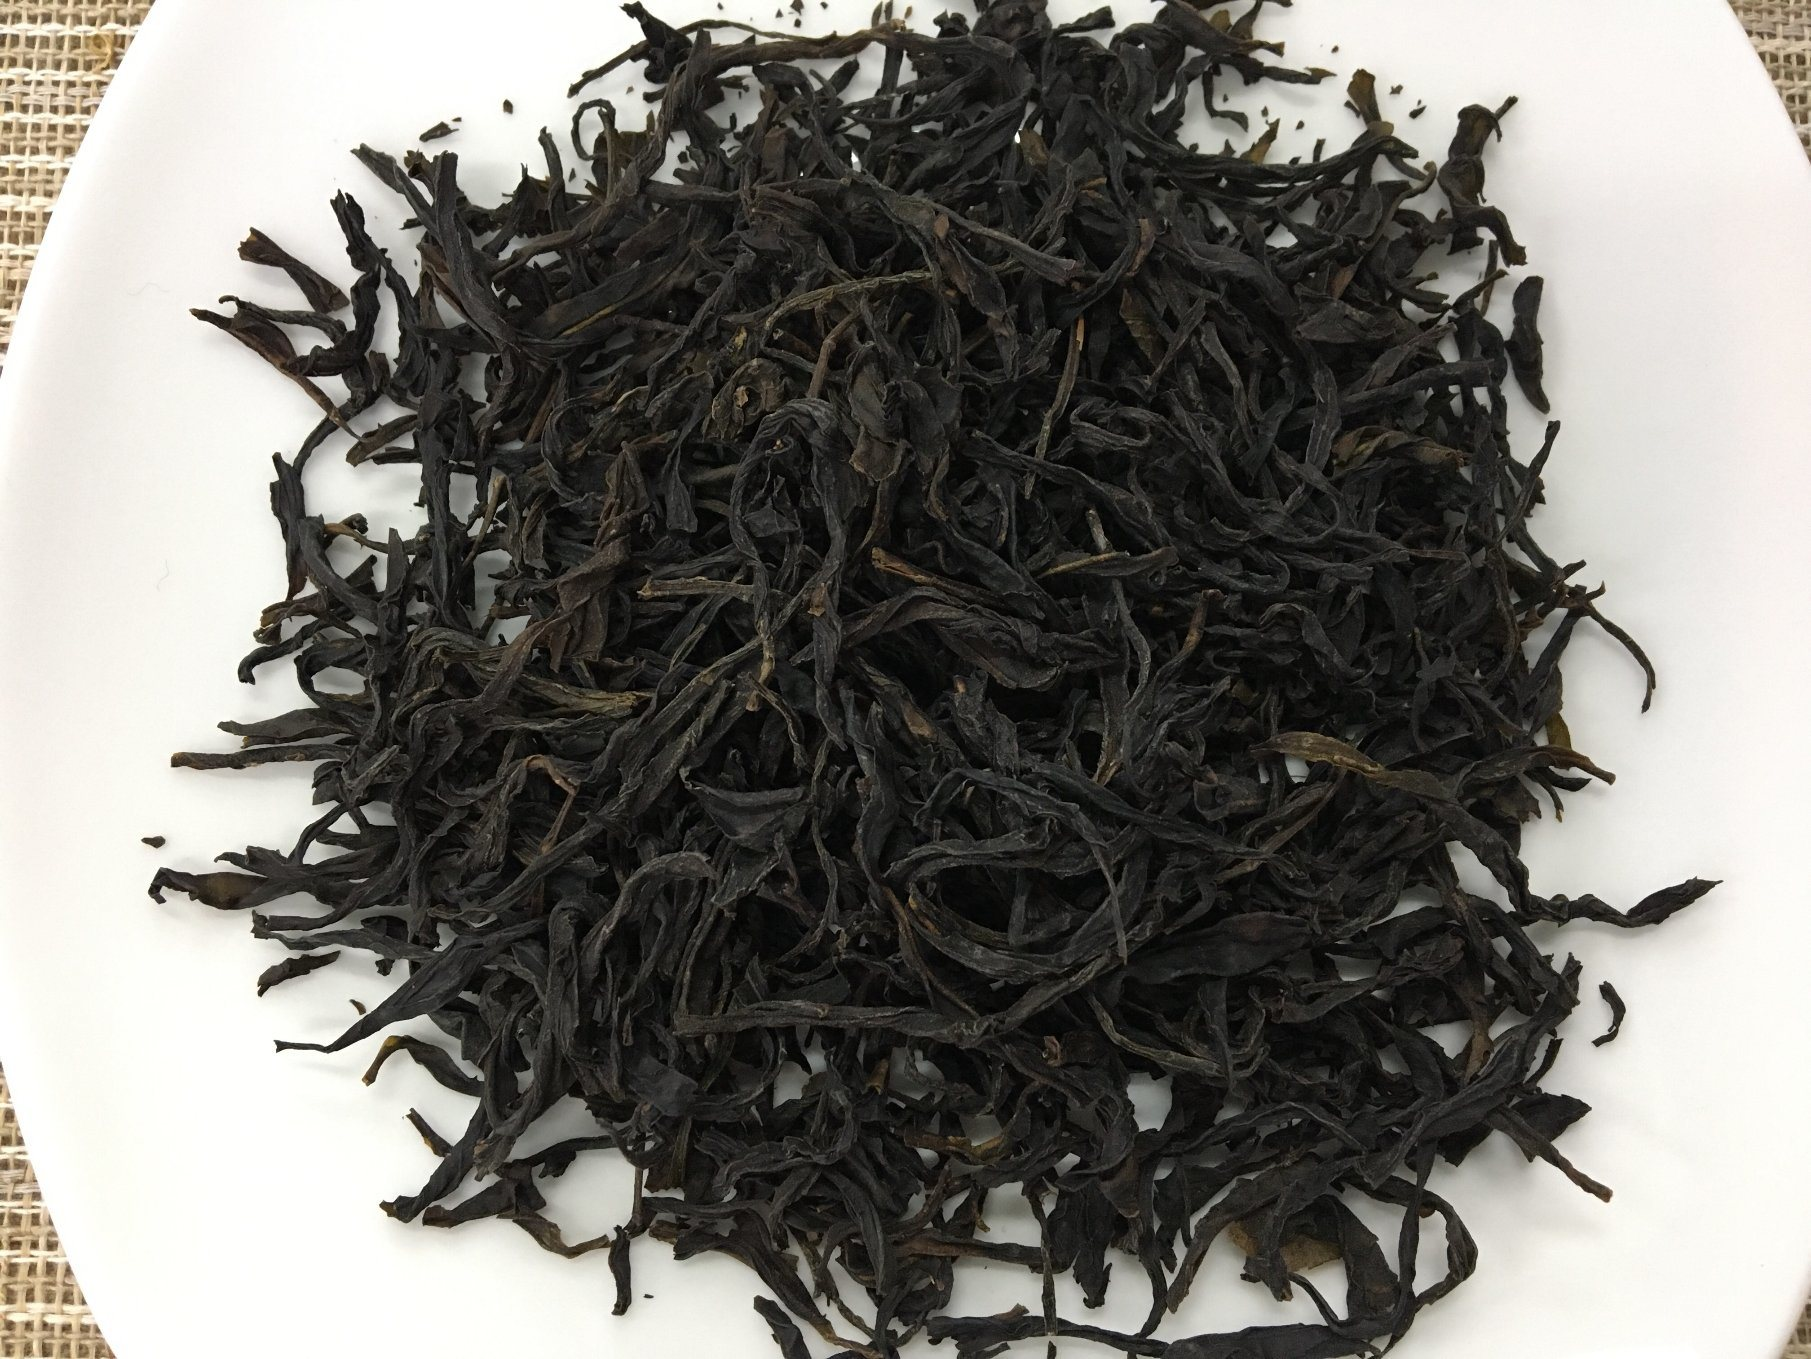 China Tea Mi LAN Phenix Dan Cong Chinese Oolong Tea